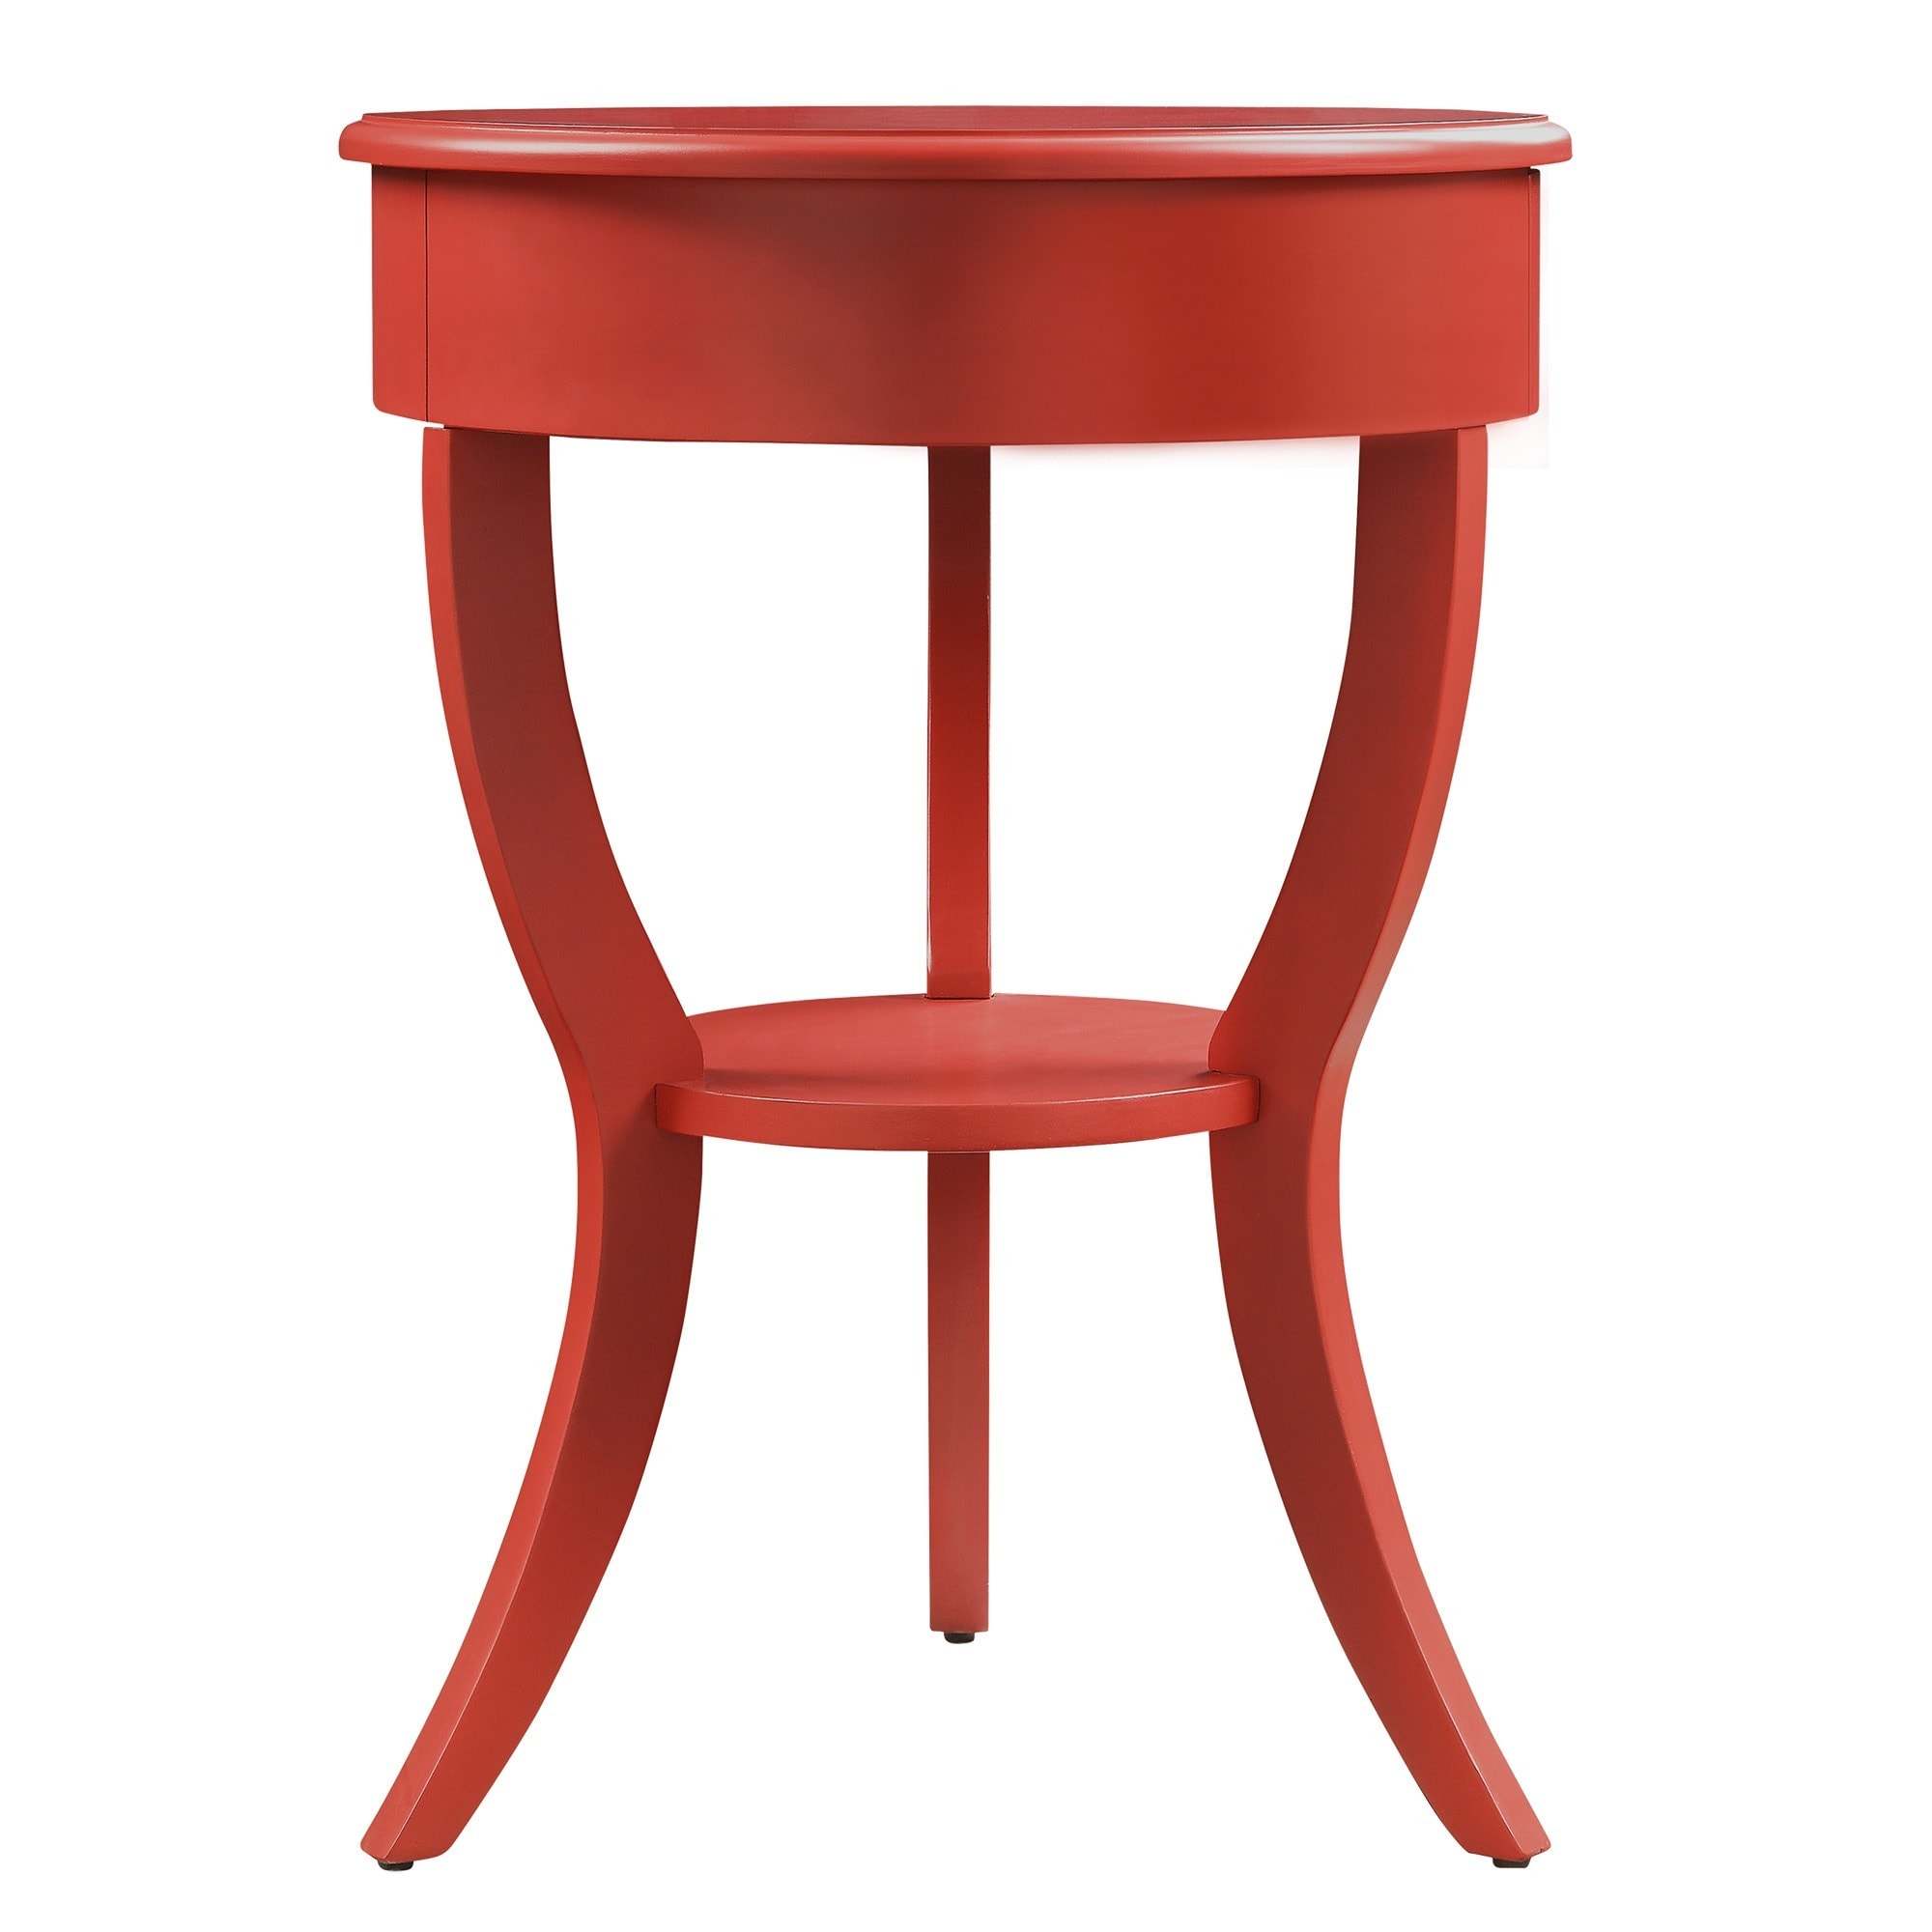 burkhardt tripod round wood accent table inspire bold red free shipping today rustic couch pub dining bird kohls bedspreads and comforters outdoor furniture canberra side with